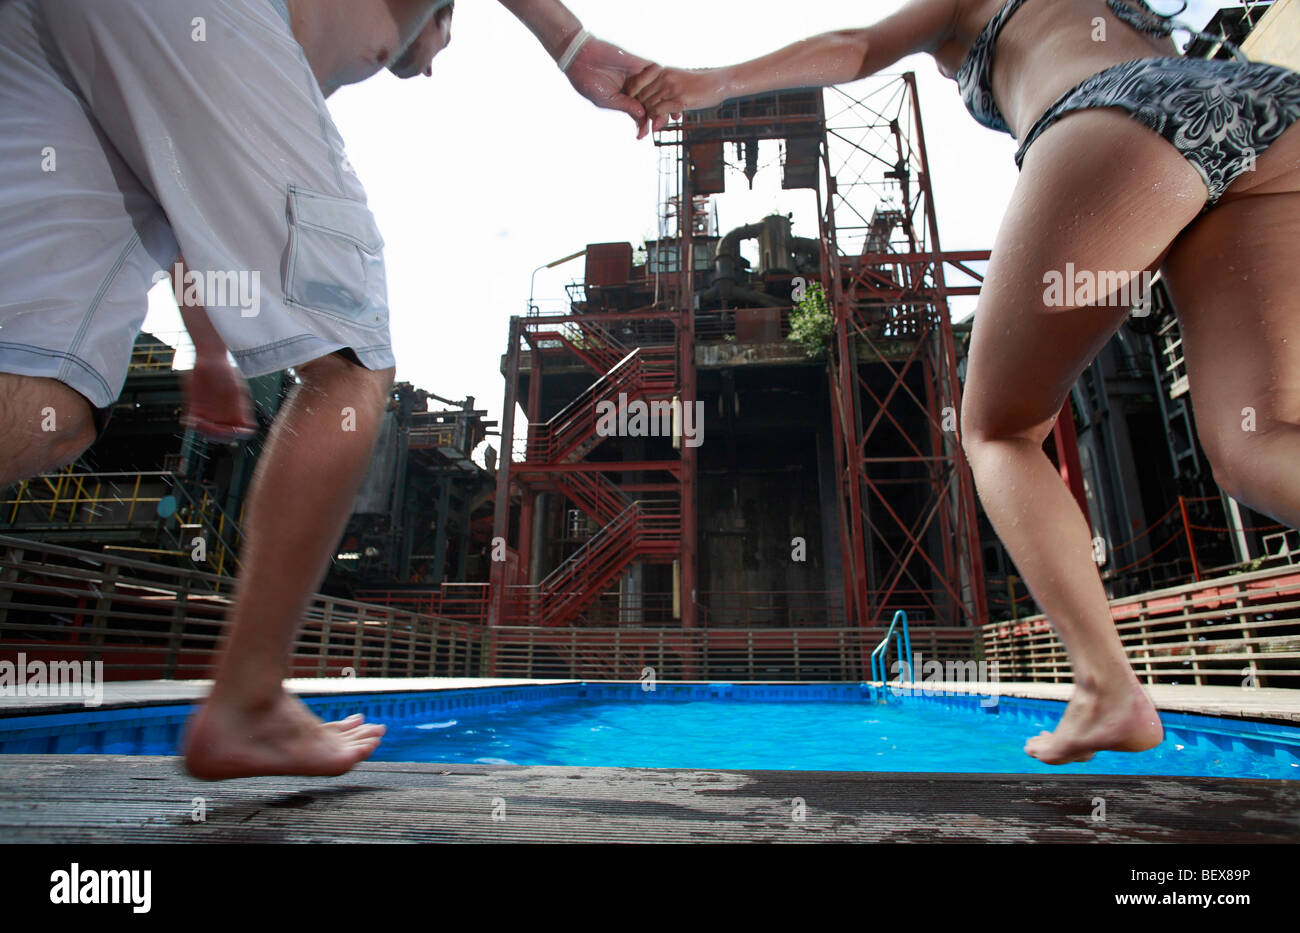 Swimming pool at Zollverein Coal Mine Industrial Complex - Stock Image